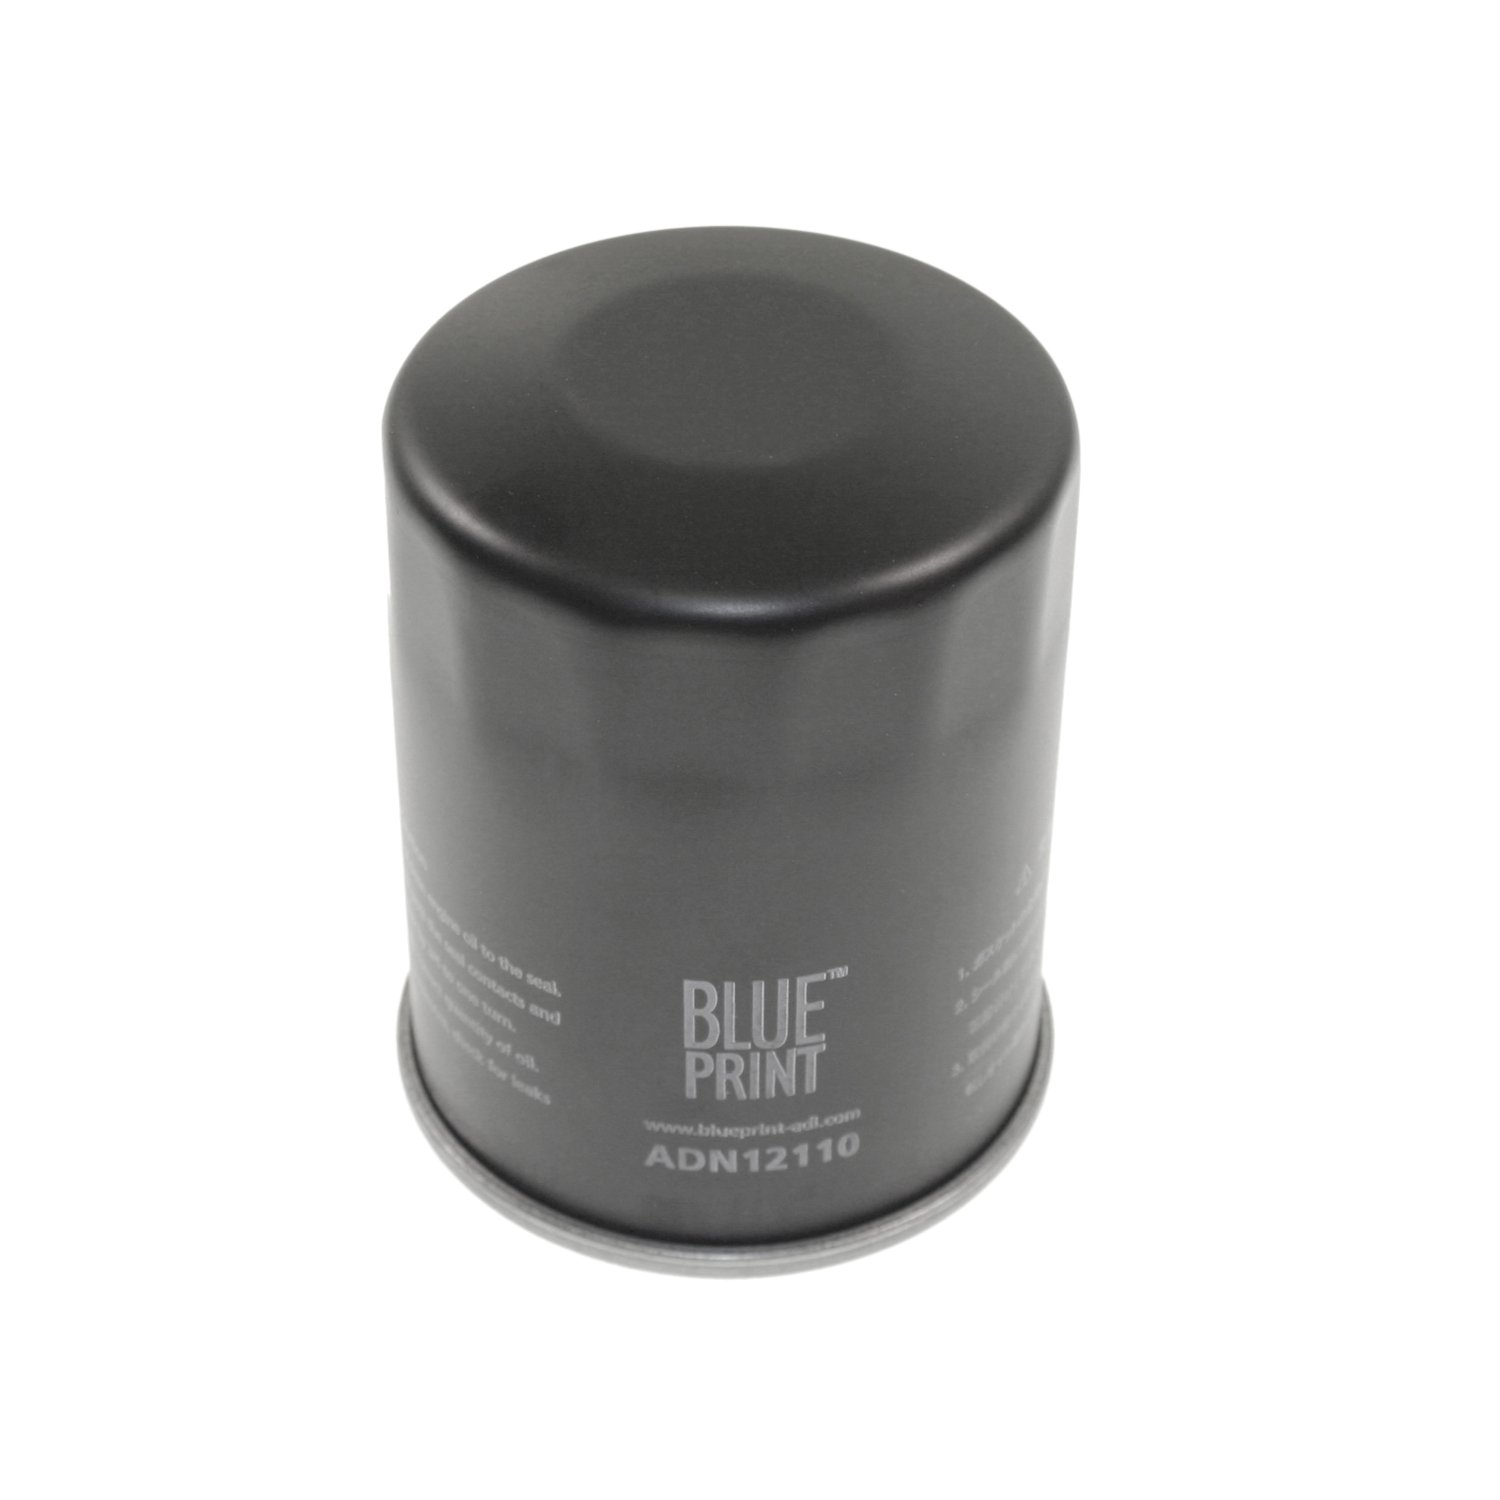 Blue Print ADN12110 Oil Filter pack of one